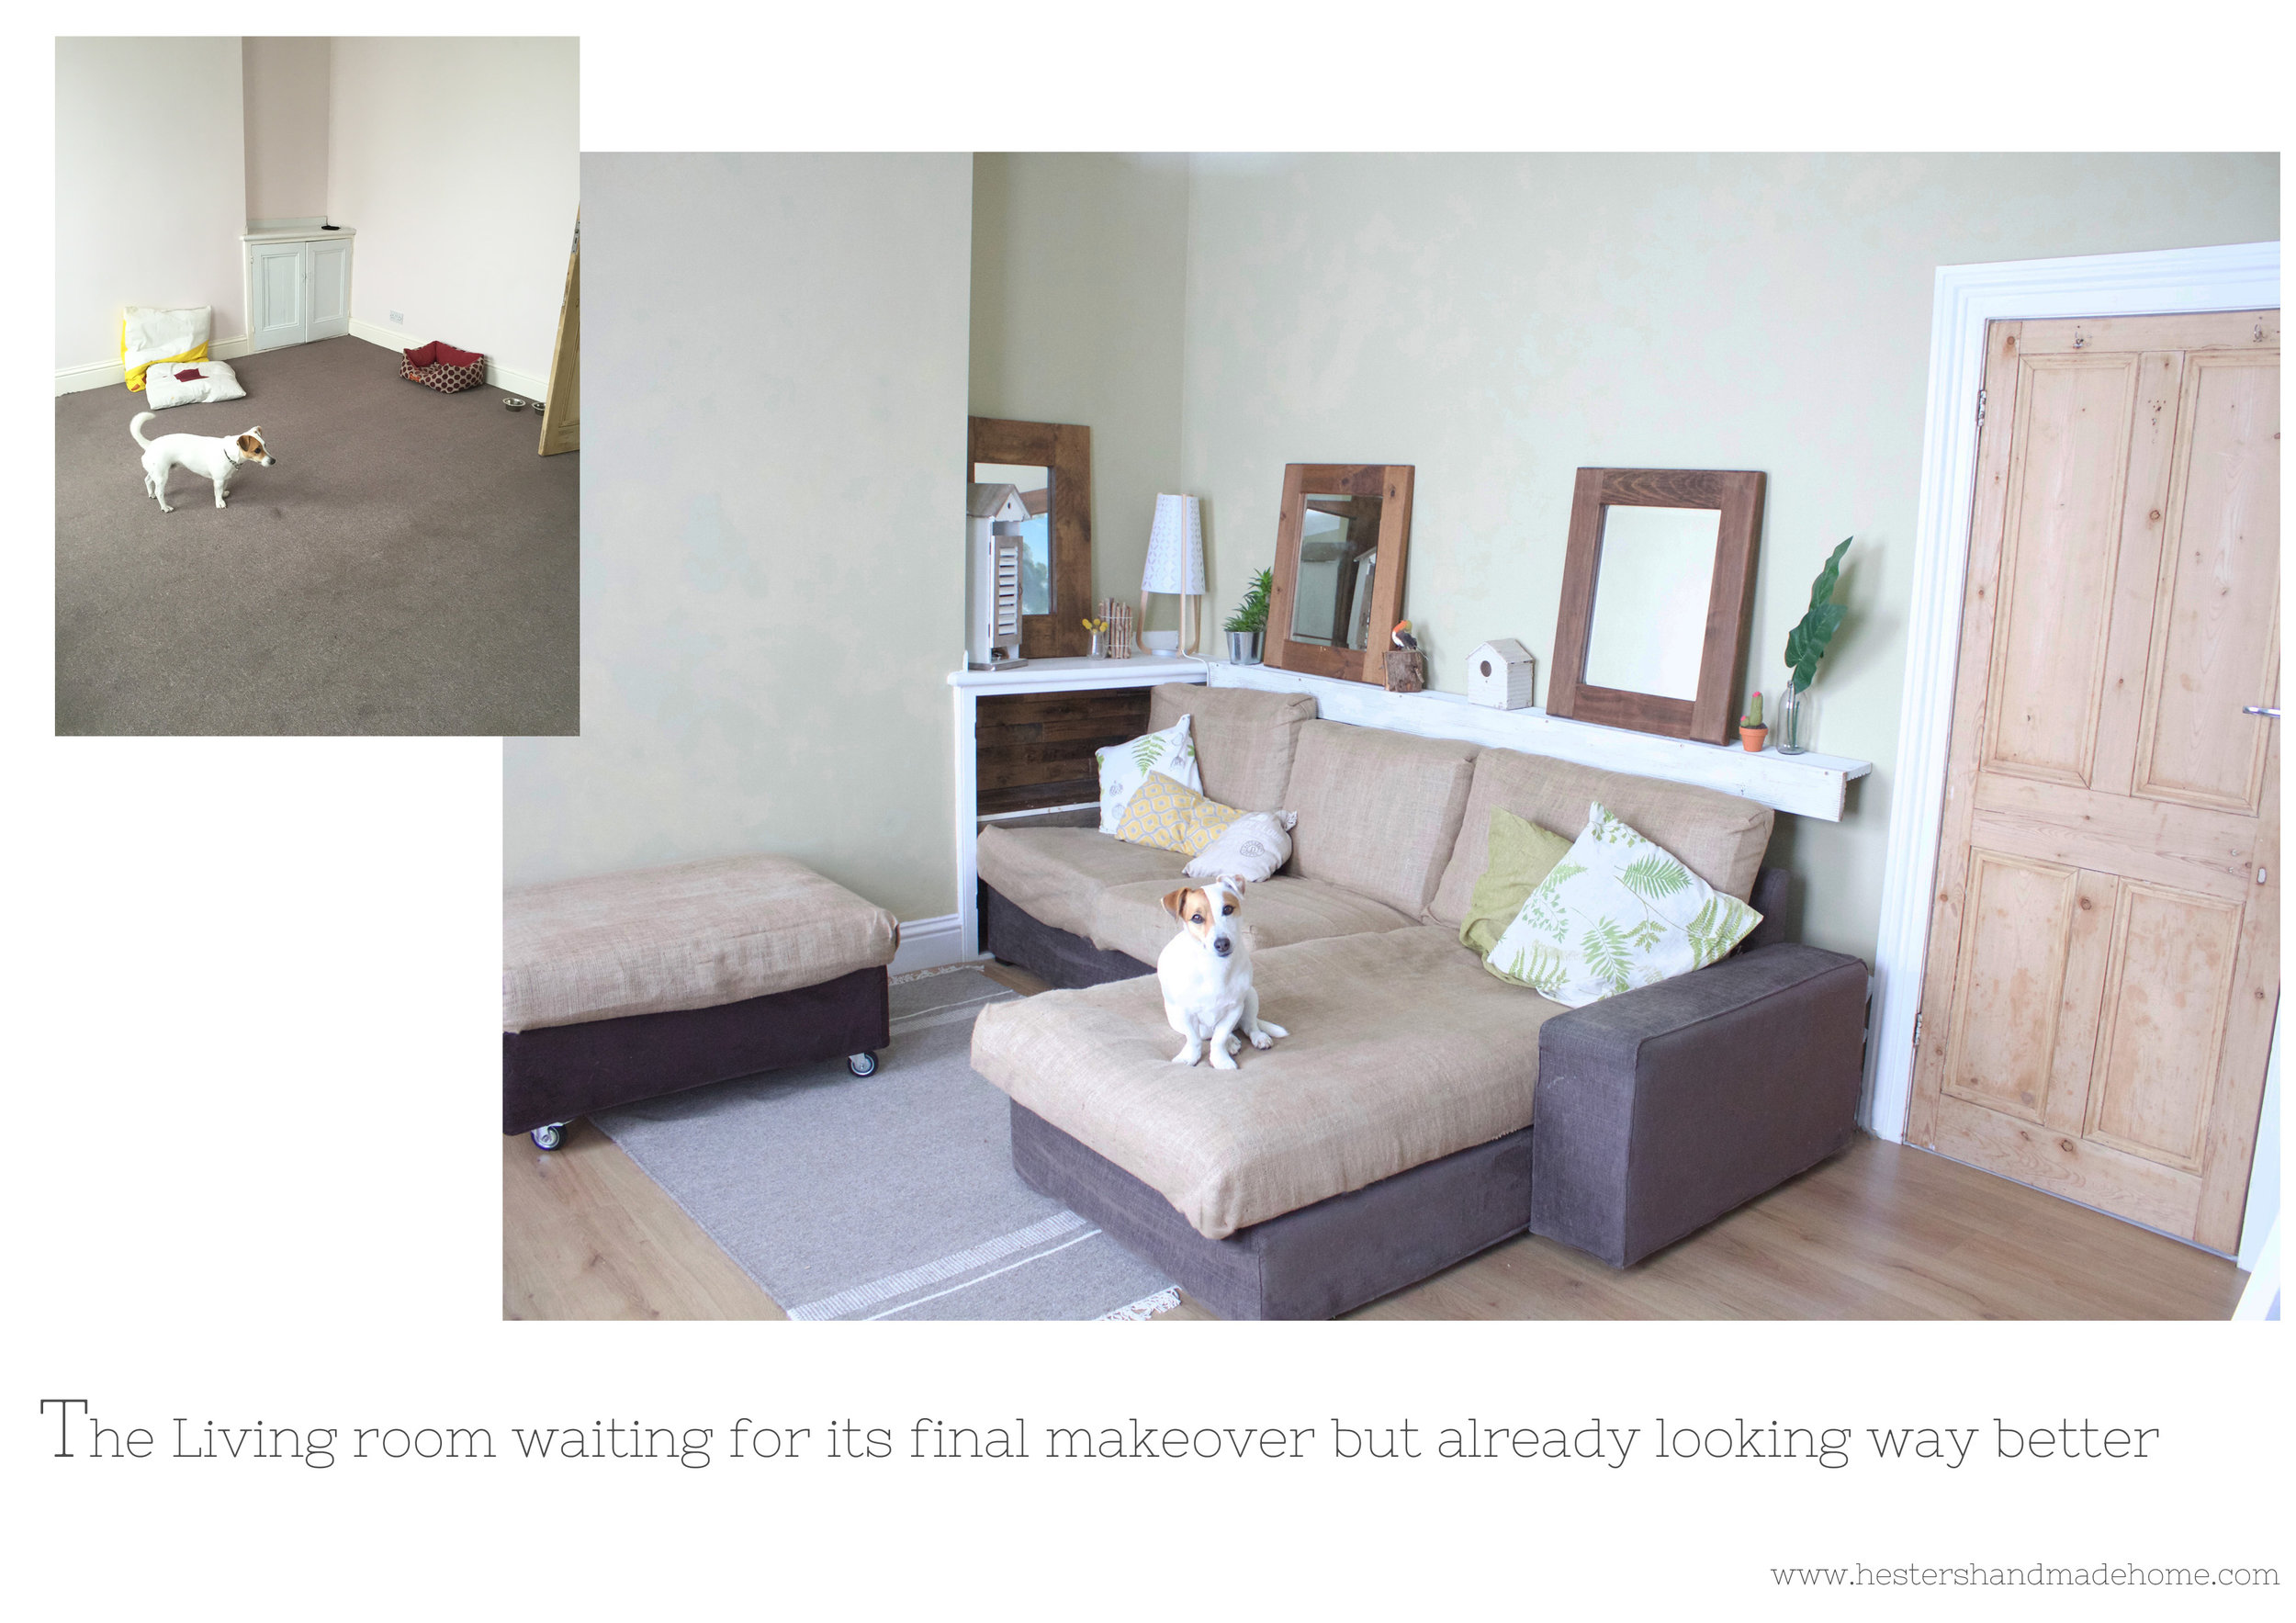 Living room makeover by www.hestershandmadehome.com